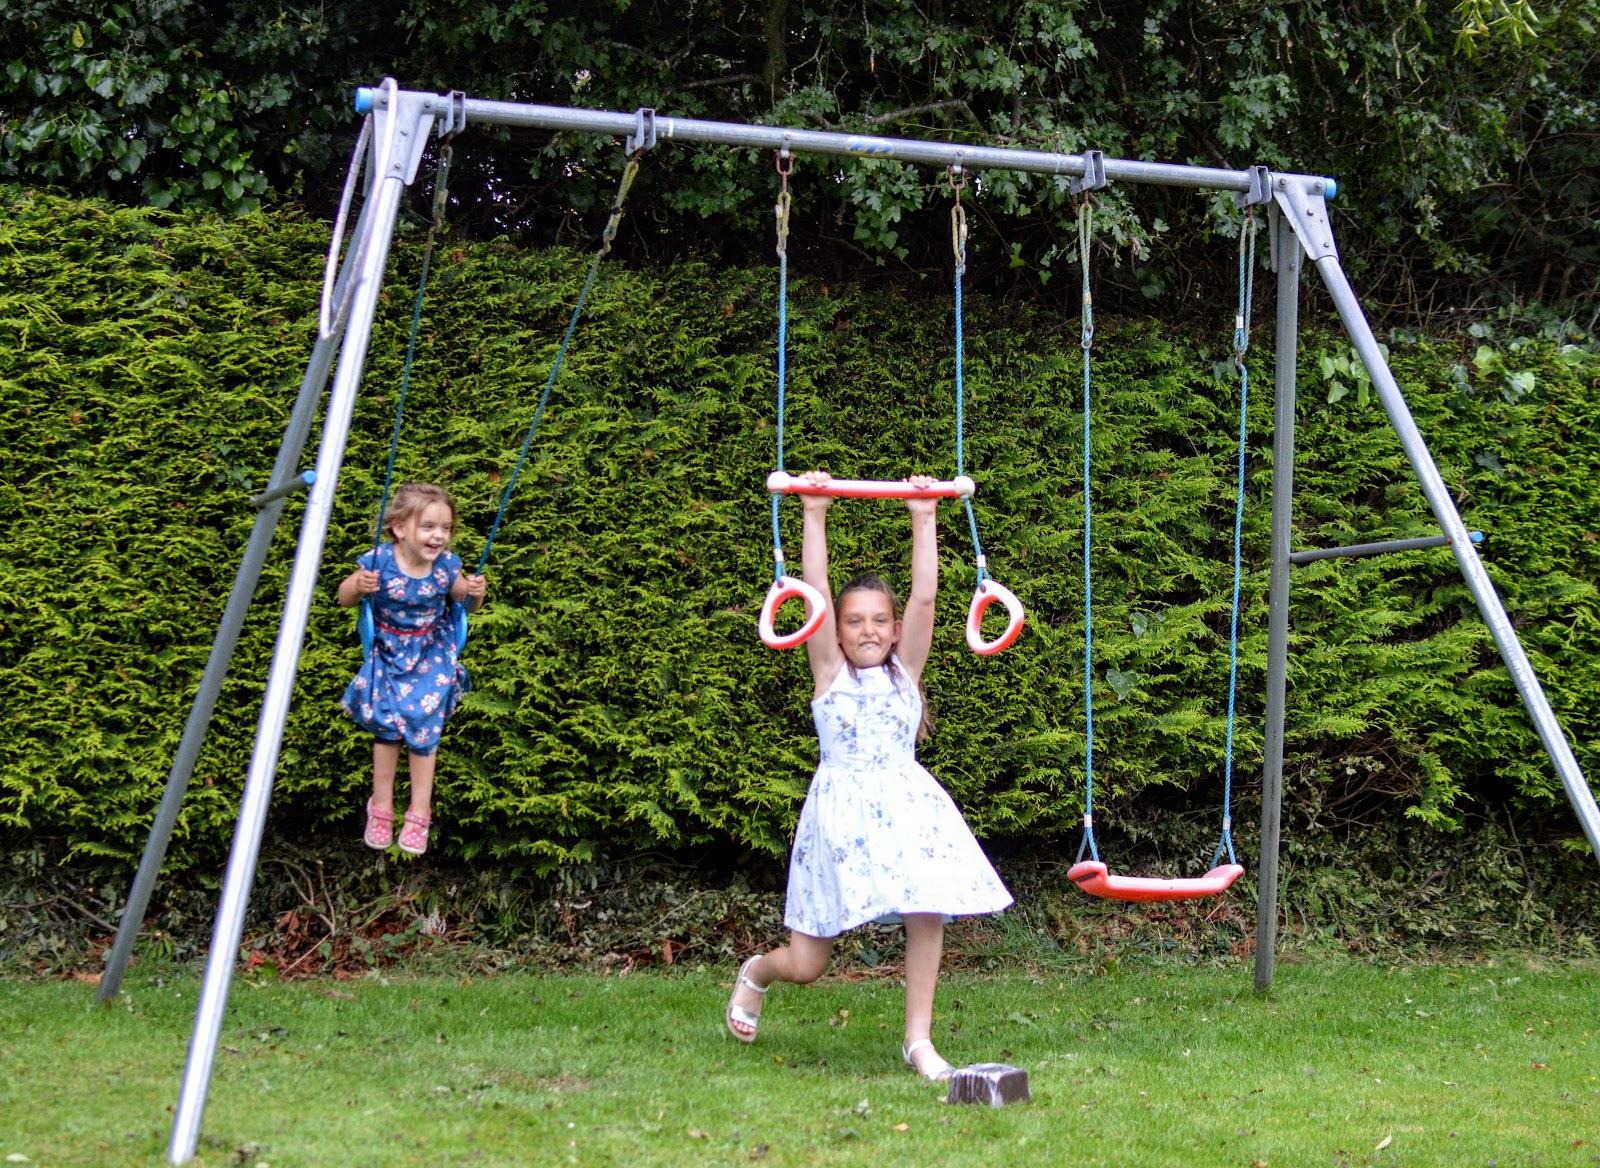 Children playing on swings